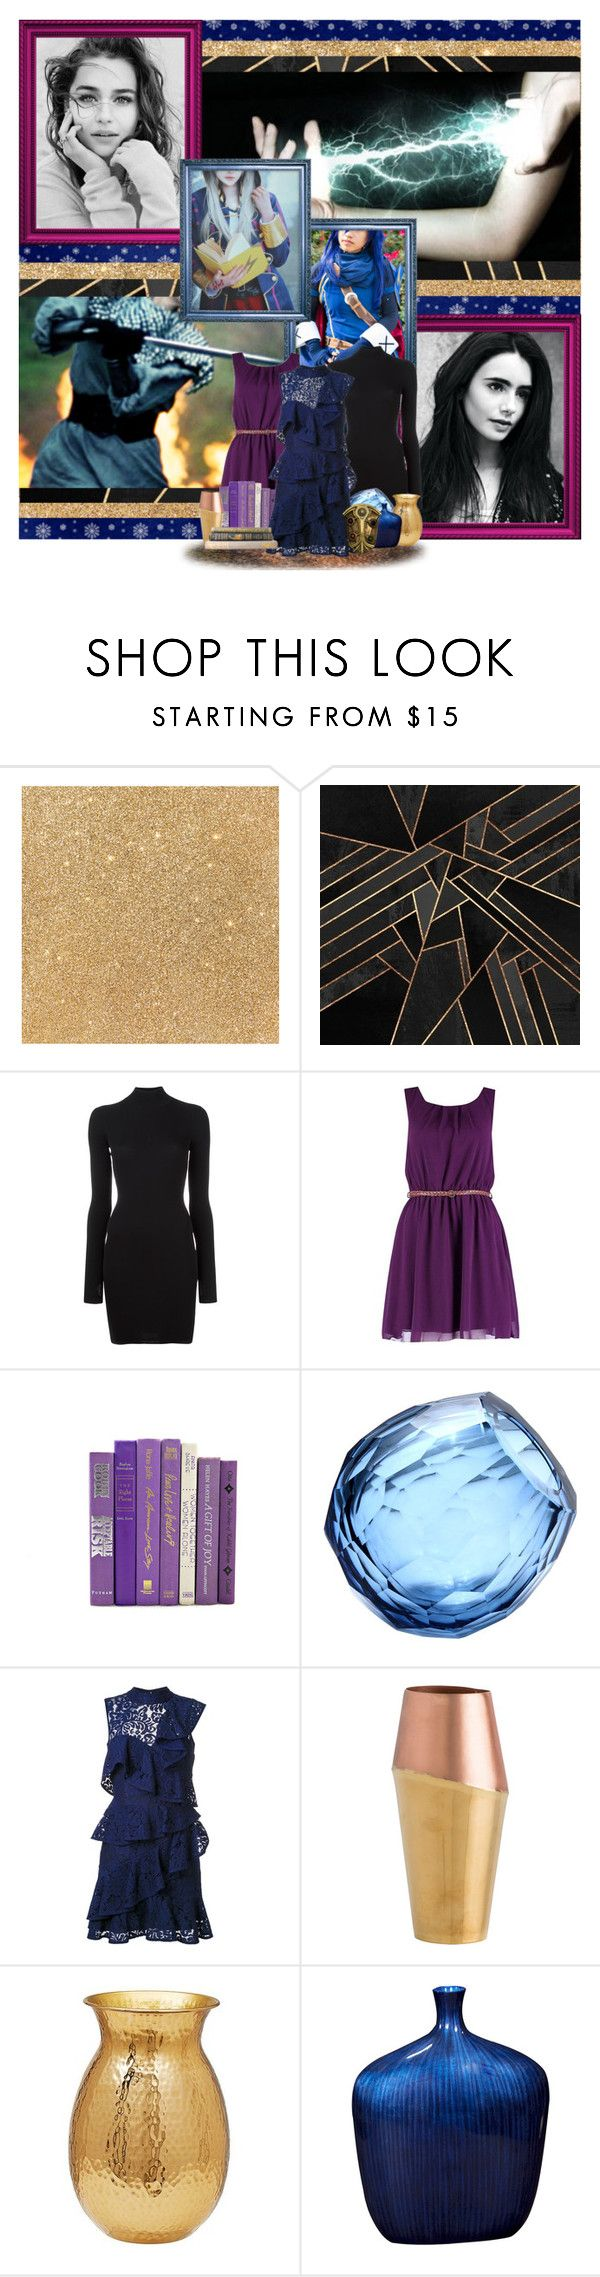 """""""Time to Tip the Scales!"""" by aksmasads ❤ liked on Polyvore featuring Katie, adidas Originals, Boohoo, Bungalow 5, Rebecca Vallance and Howard Elliott"""